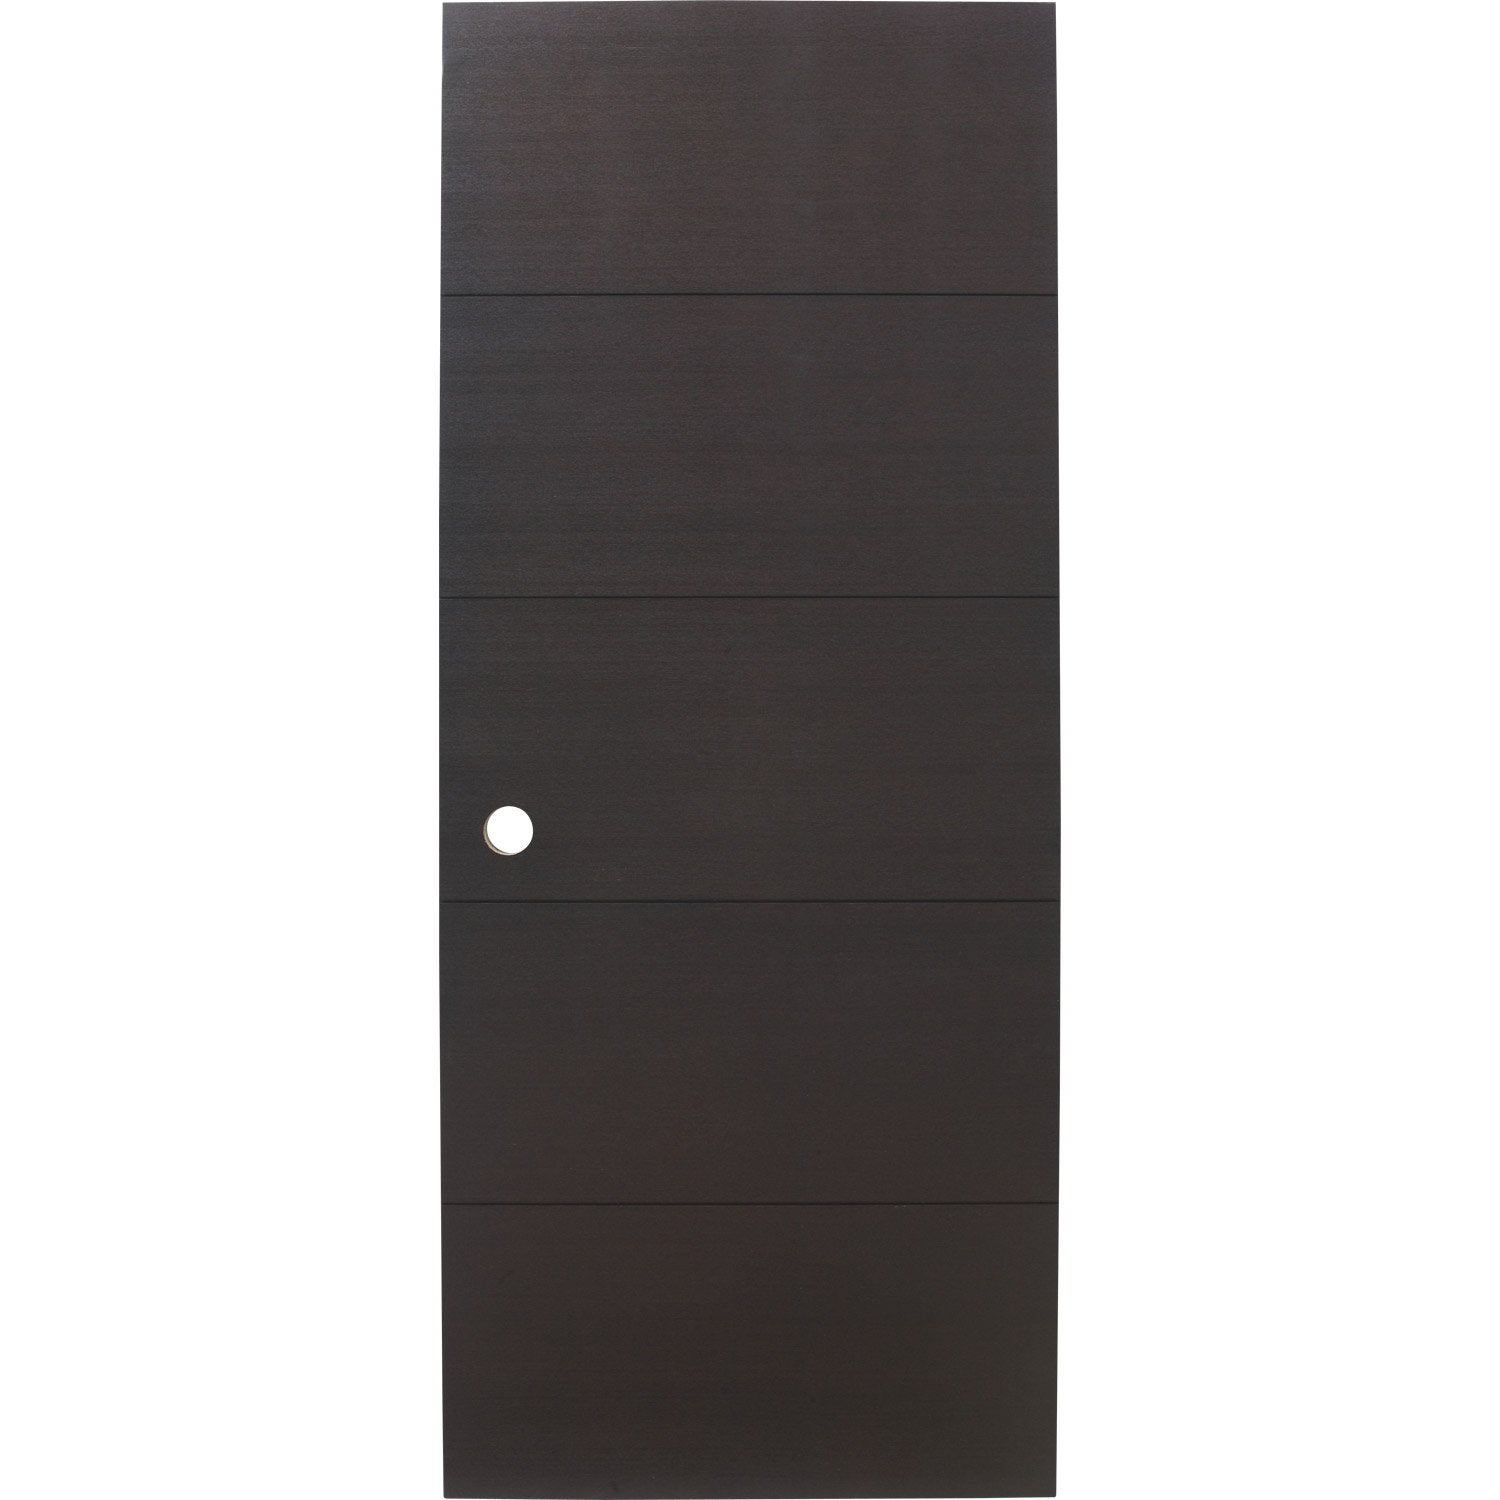 porte coulissante fr ne plaqu marron tokyo artens 204 x 93 cm leroy merlin. Black Bedroom Furniture Sets. Home Design Ideas